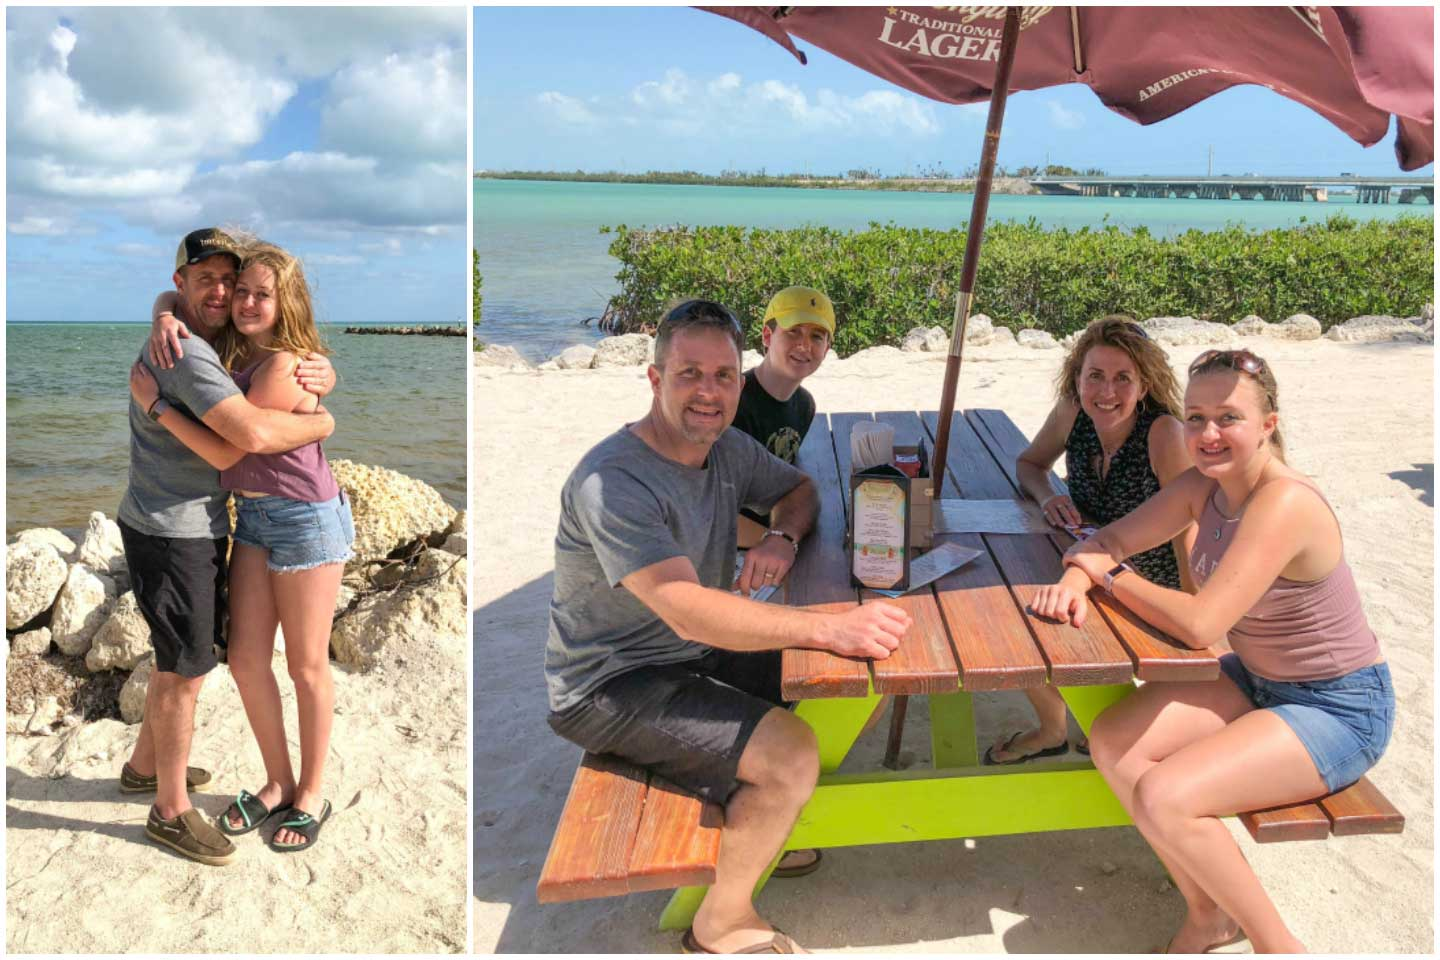 Collage of our family in the Florida Keys - one photo of daddy and daughter happily hugging each other on the beach, and another photo of our family seated at an ocean-side restaurant picnic table.